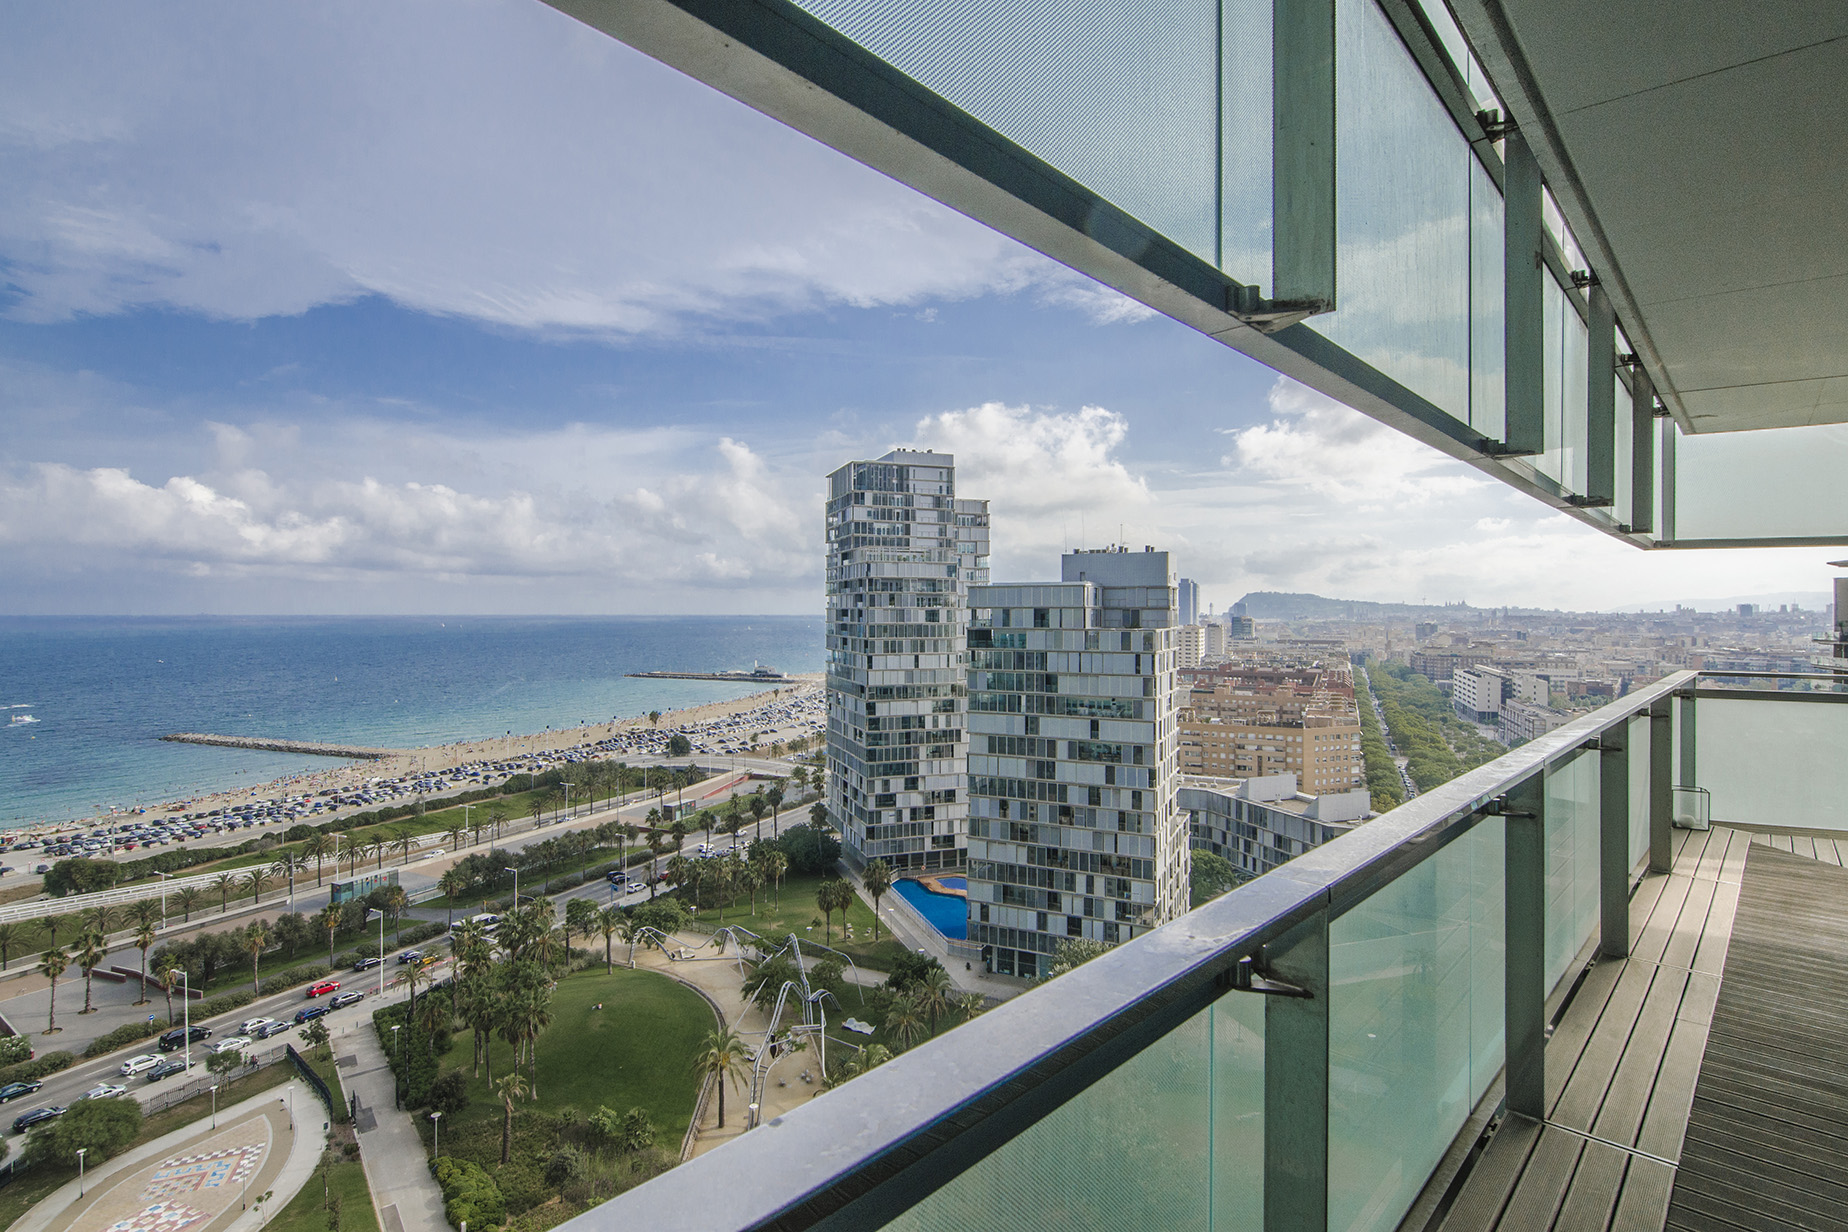 Appartement pour l Vente à Magnificent Apartment with Spectacular views in Diagonal Mar, Barcelona Diagonal Mar, Barcelona City, Barcelona, 08019 Espagne